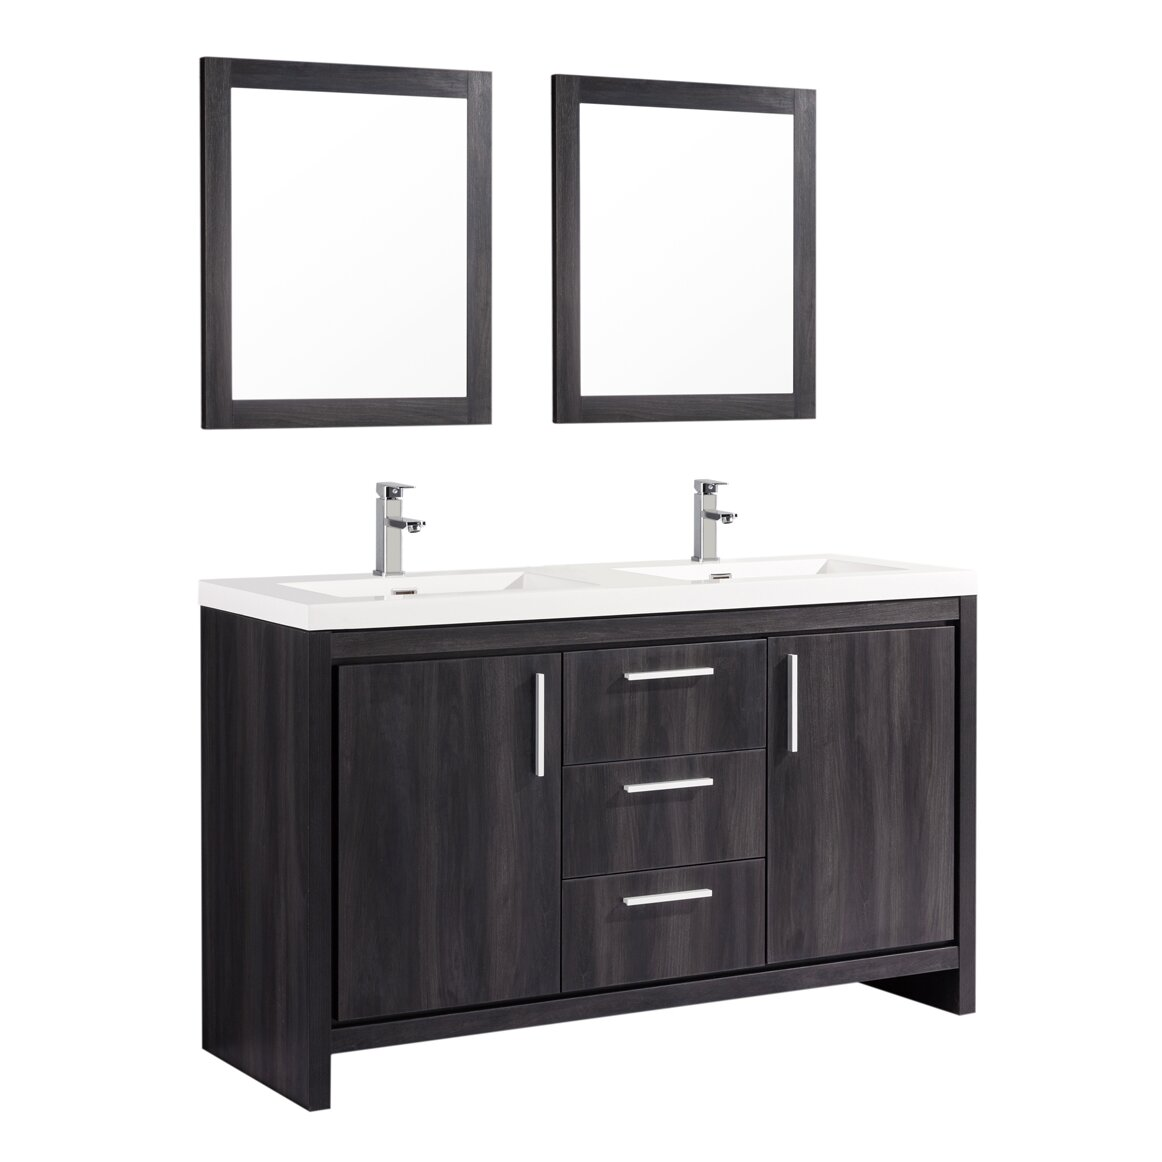 Mtdvanities miami 59 double sink modern bathroom vanity set with mirror wayfair Bathroom sink and vanity sets